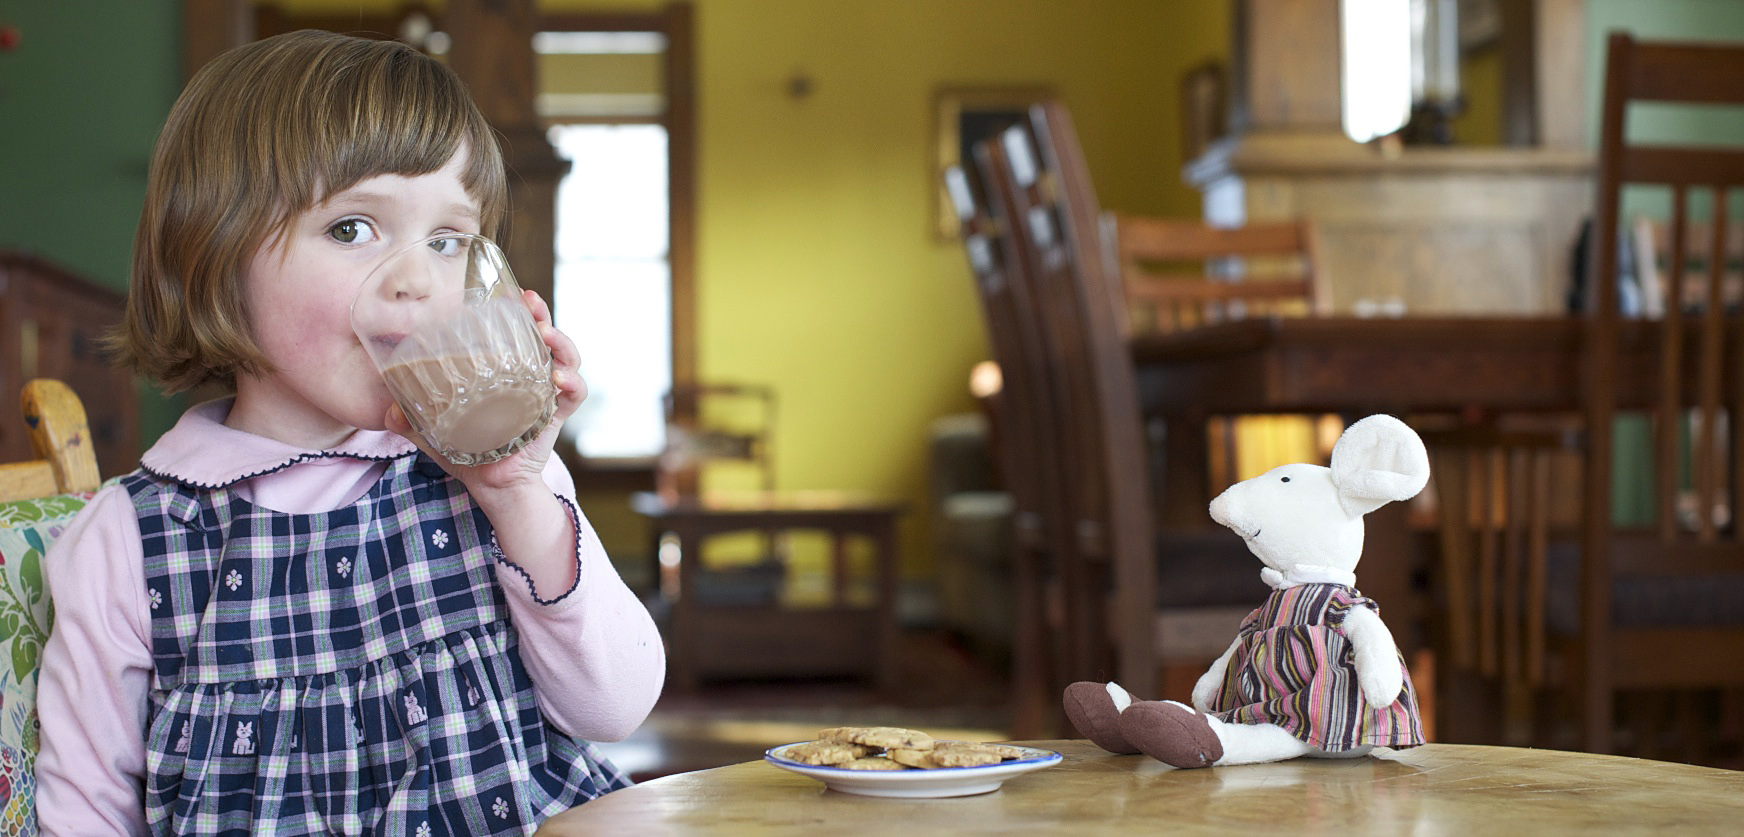 A young girl drinks chocolate milk with a plate of cookies and her toy mouse on the table in front of her.